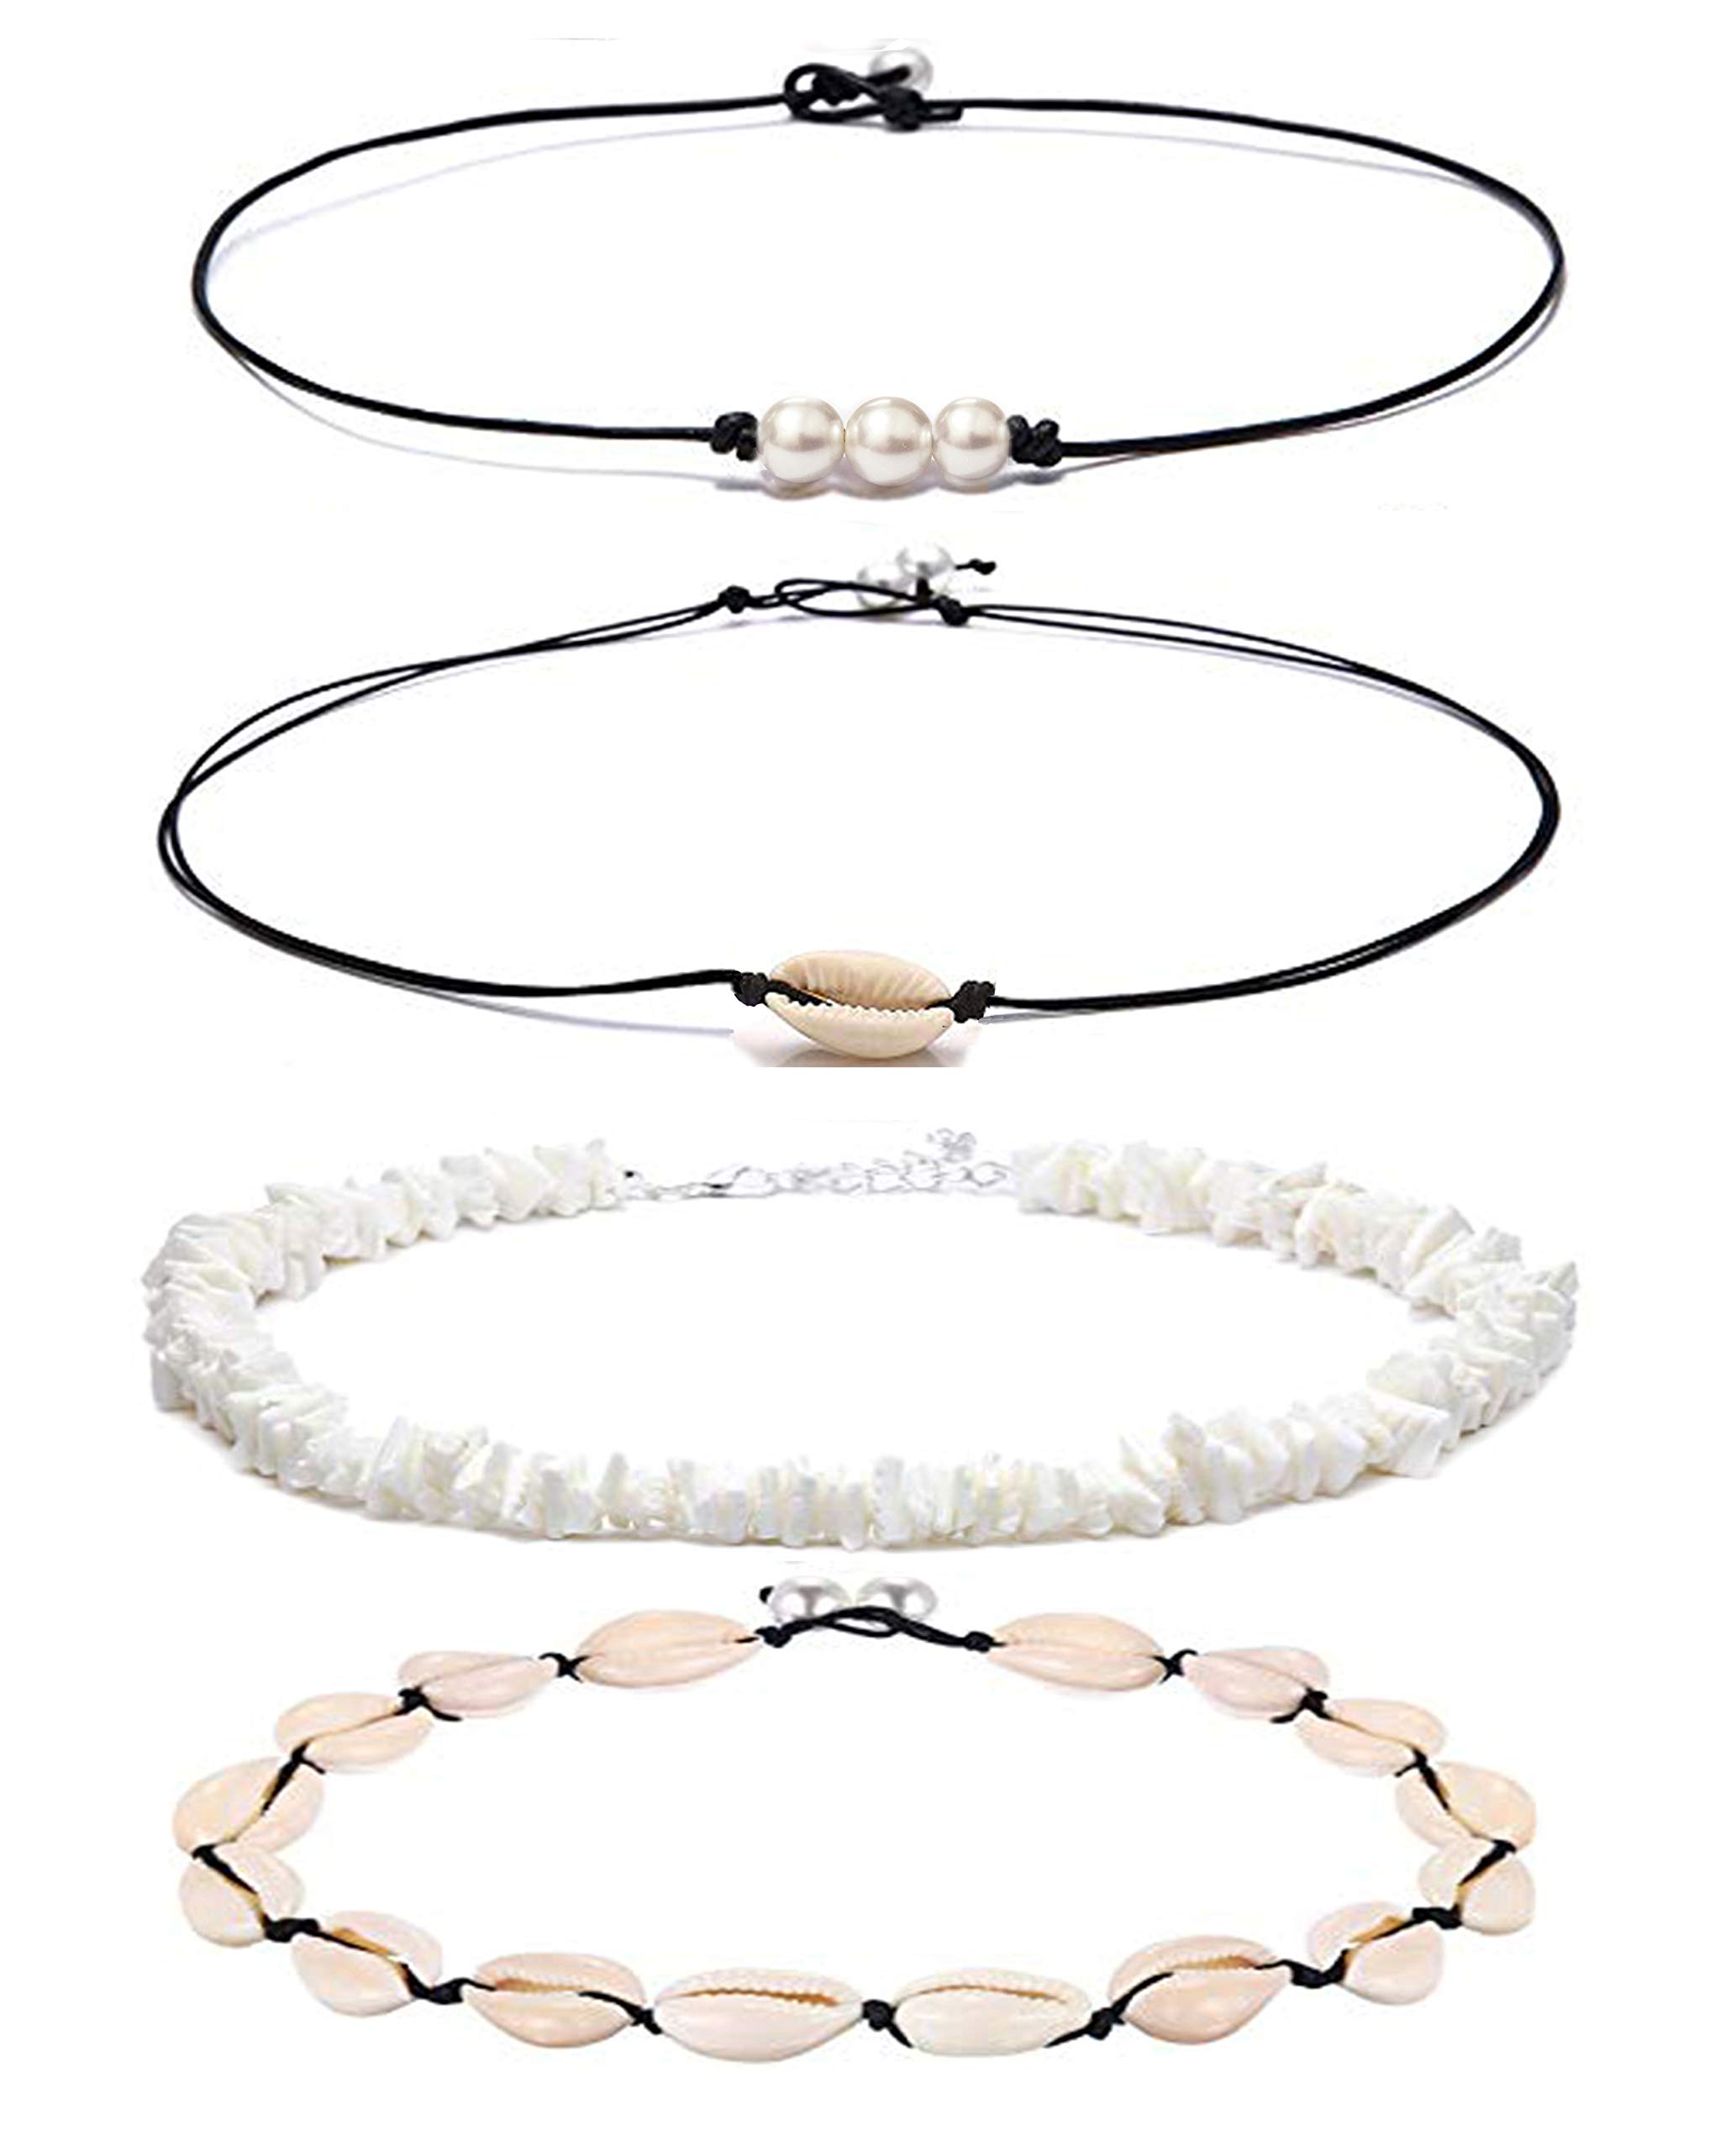 SEWEI Shell Pearl Choker Necklace for Women Hawaiian Seashell Pearls Choker Necklace Adjustable Cord Necklace Set (Shell pear Set 4)